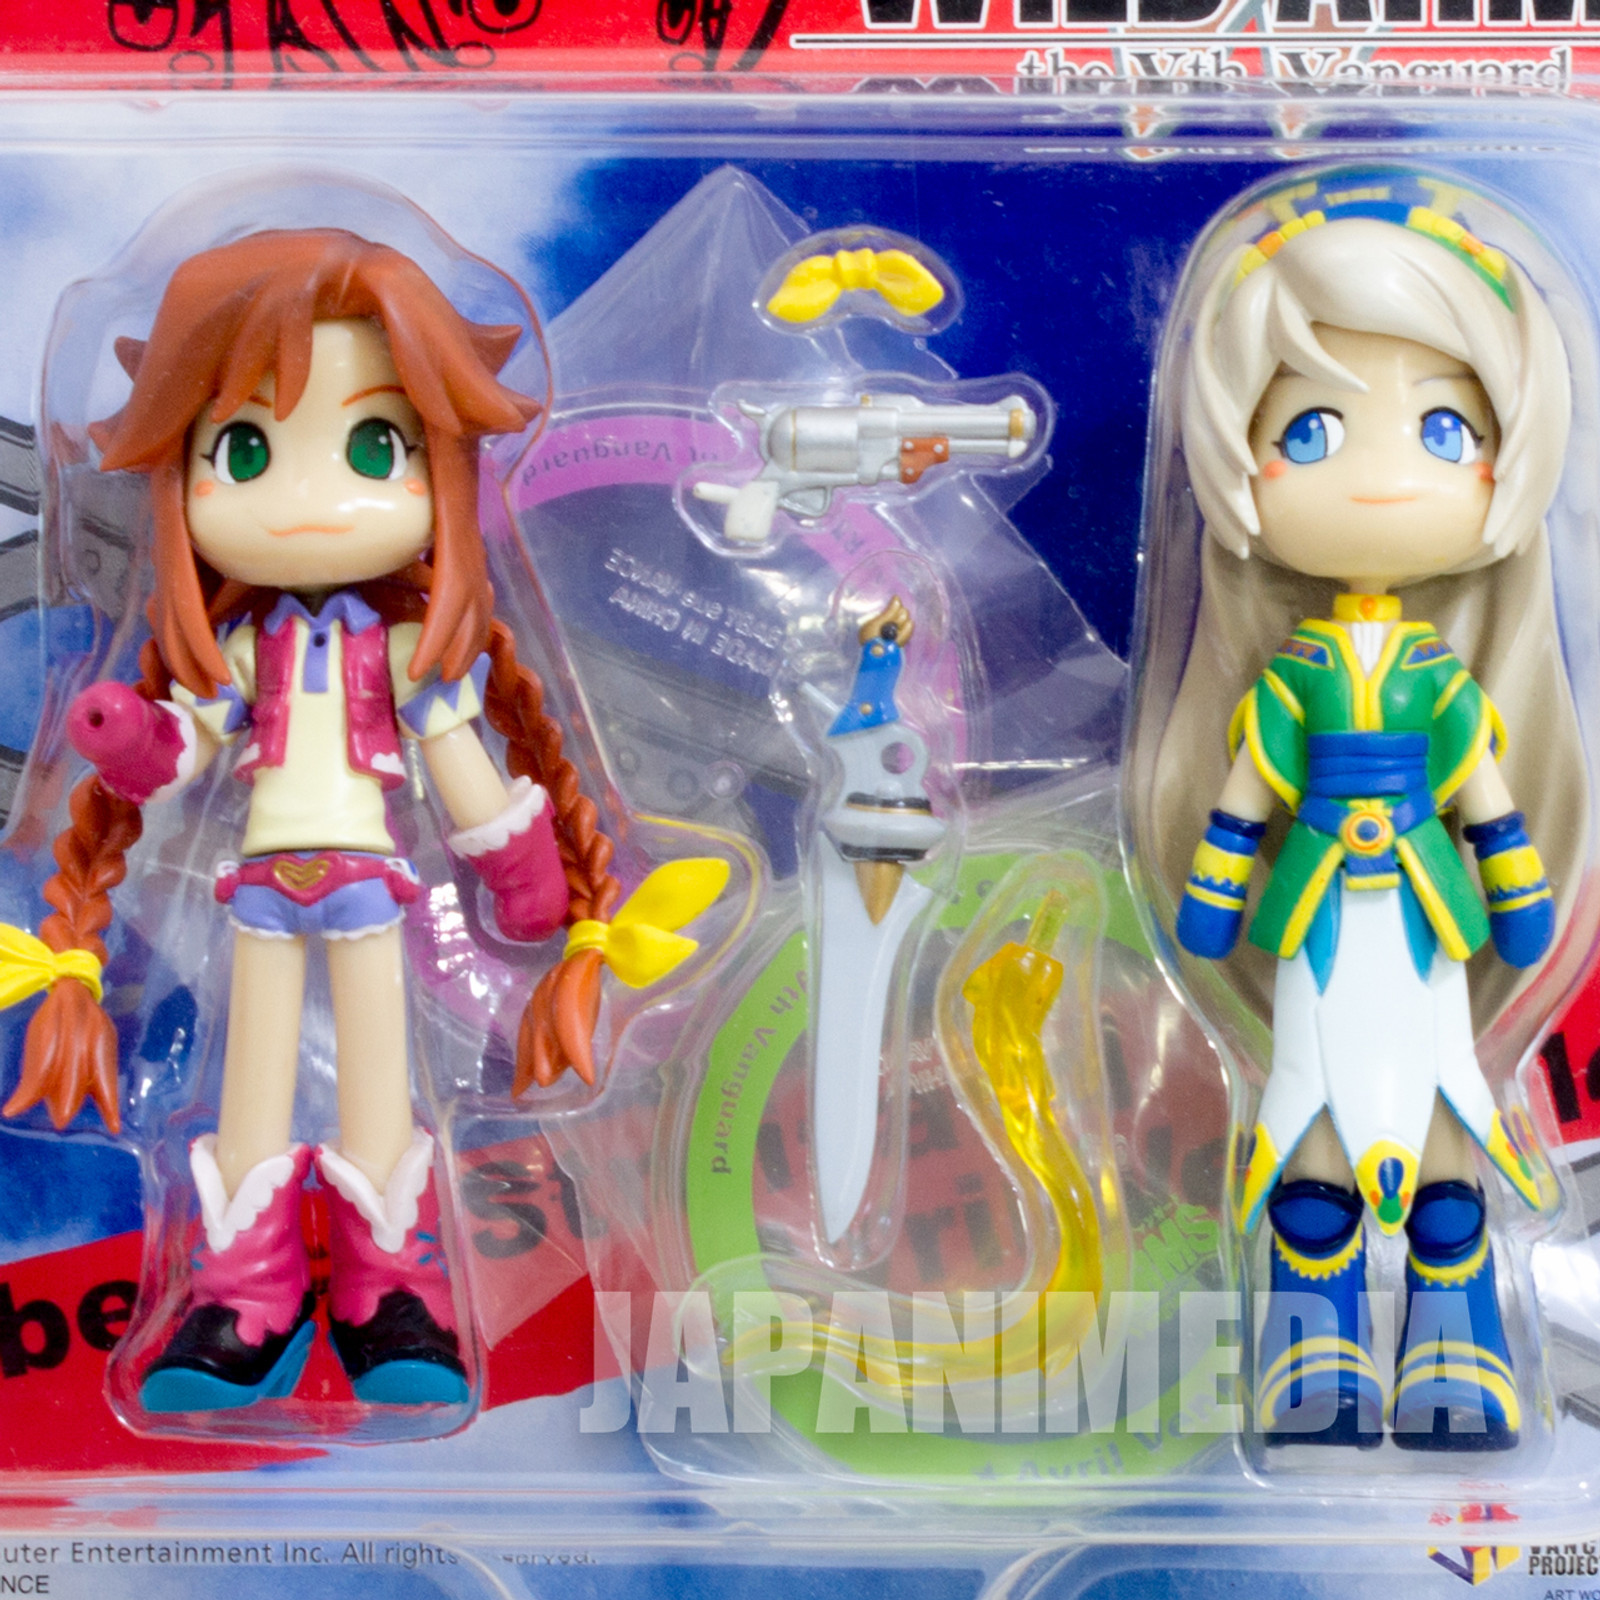 Wild Arms the Vth Vanguard REBECCA & AVRIL Figure set P:chara JAPAN GAME PS2